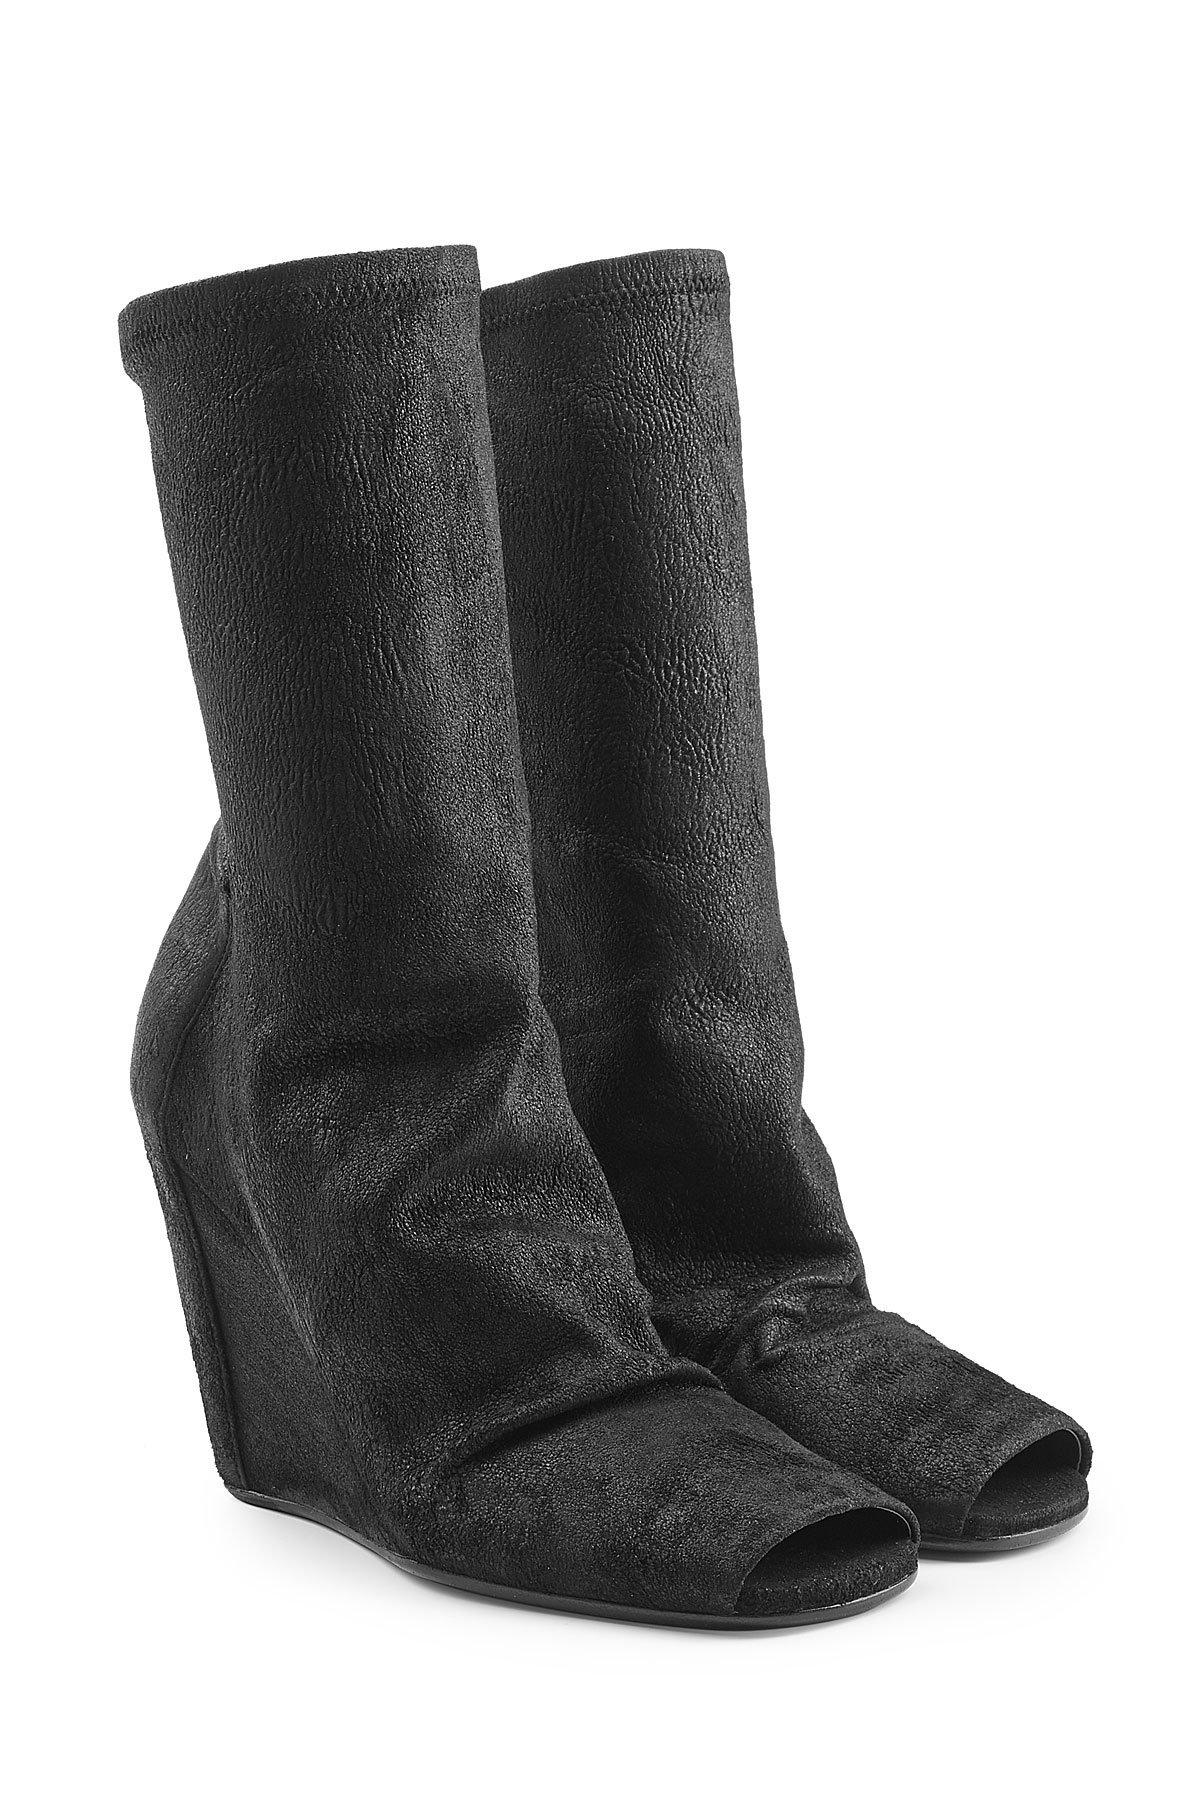 Lyst Rick Owens Leather Wedge Ankle Boots With Open Toe